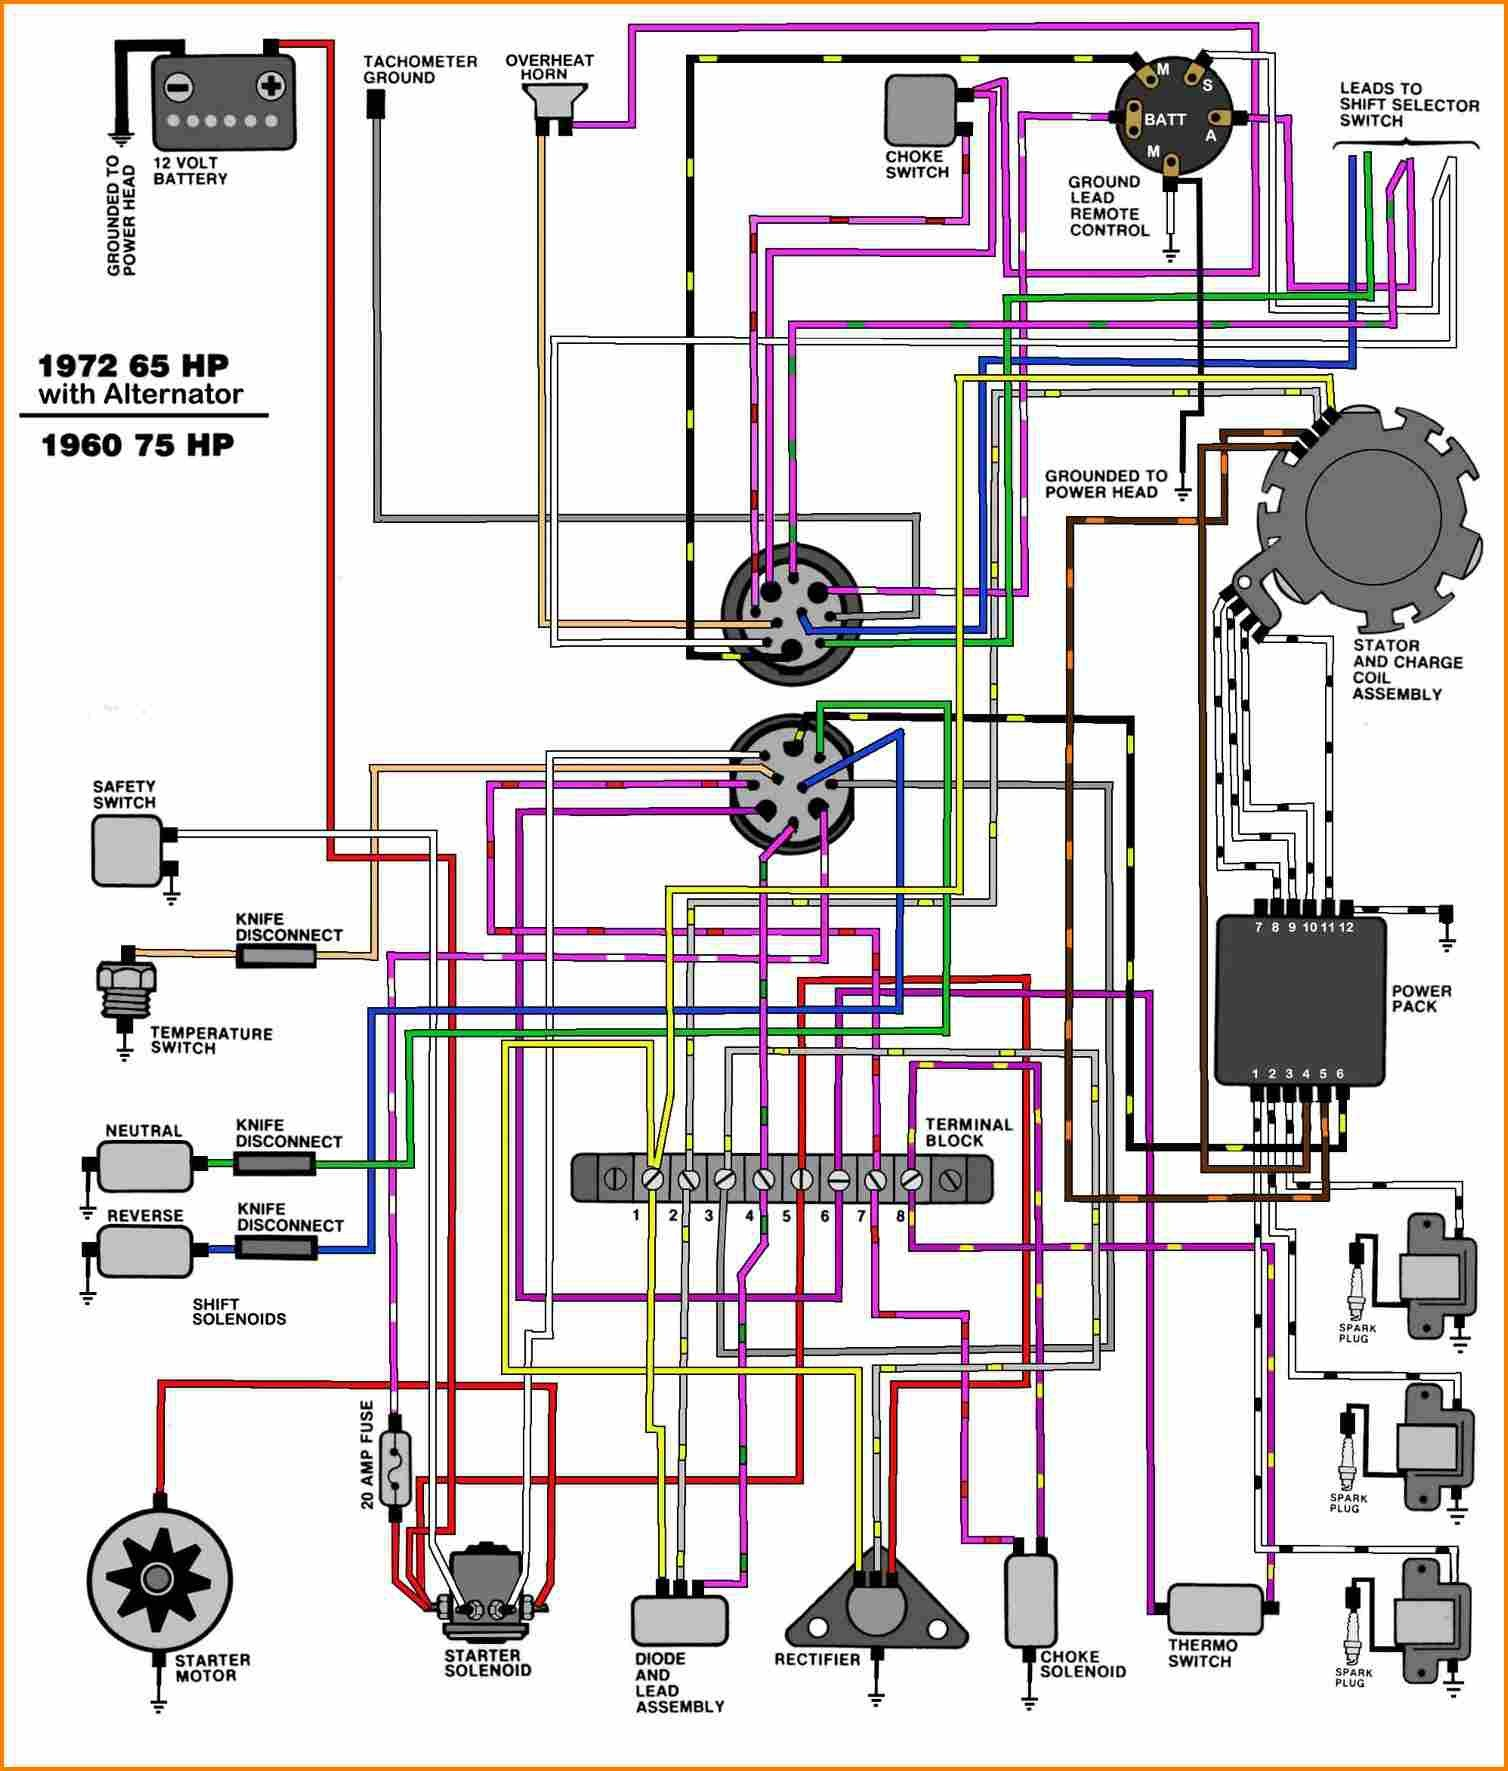 hight resolution of wiring diagram for mariner outboard online wiring diagrammariner 50 hp outboard wiring diagram wiring diagram online